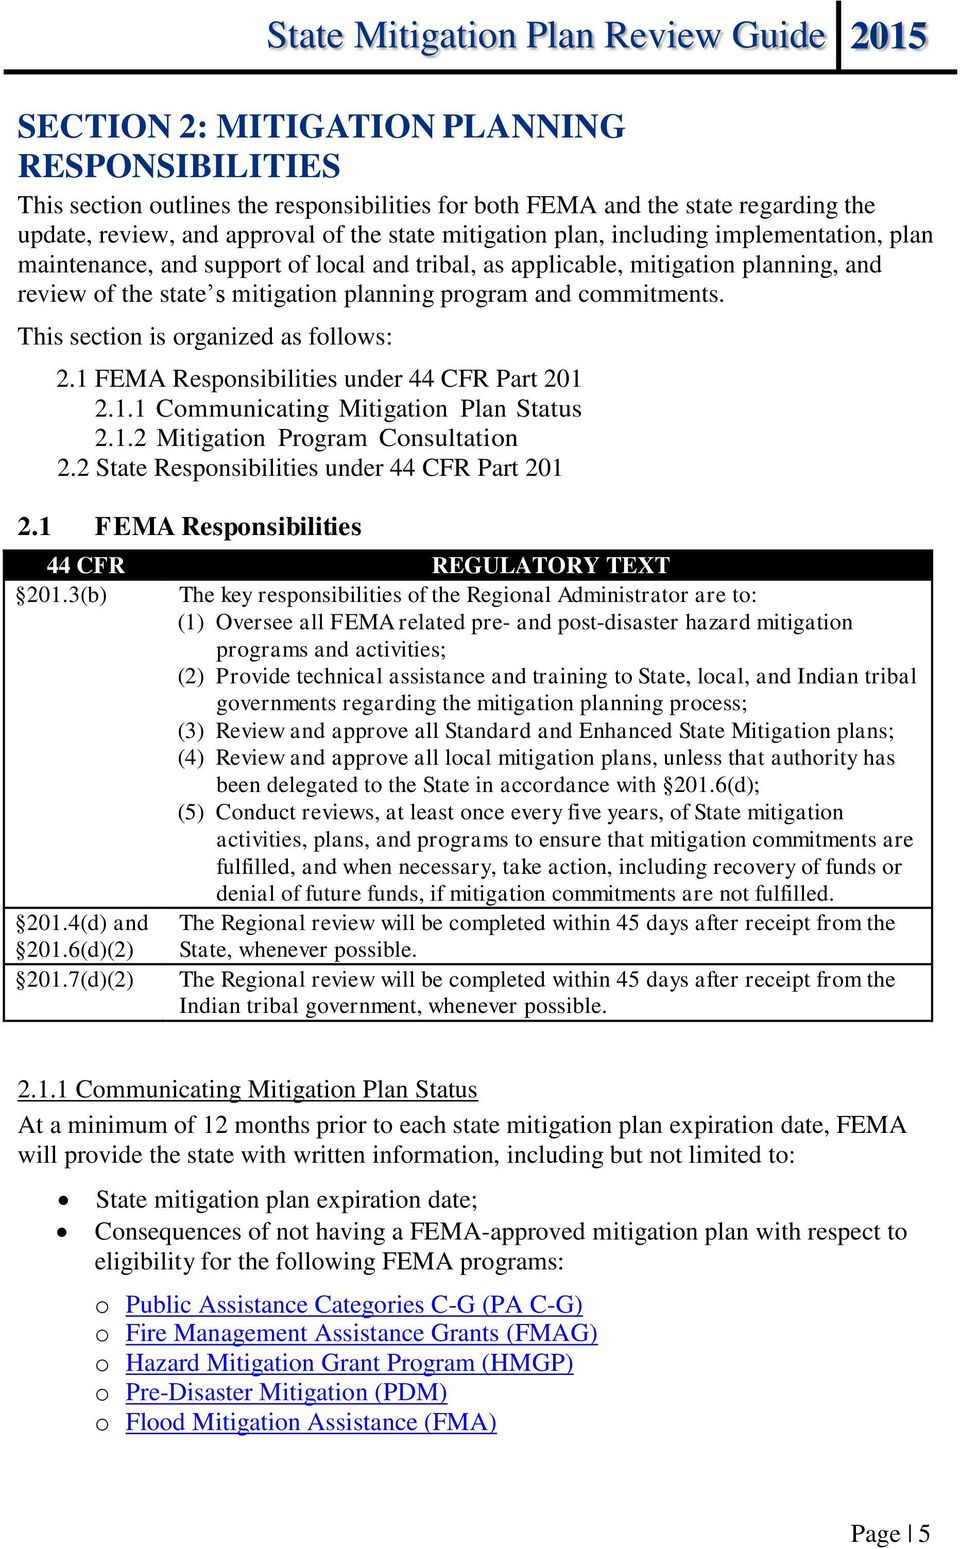 This section is organized as follows: 2.1 FEMA Responsibilities under 44 CFR Part 201 2.1.1 Communicating Mitigation Plan Status 2.1.2 Mitigation Program Consultation 2.